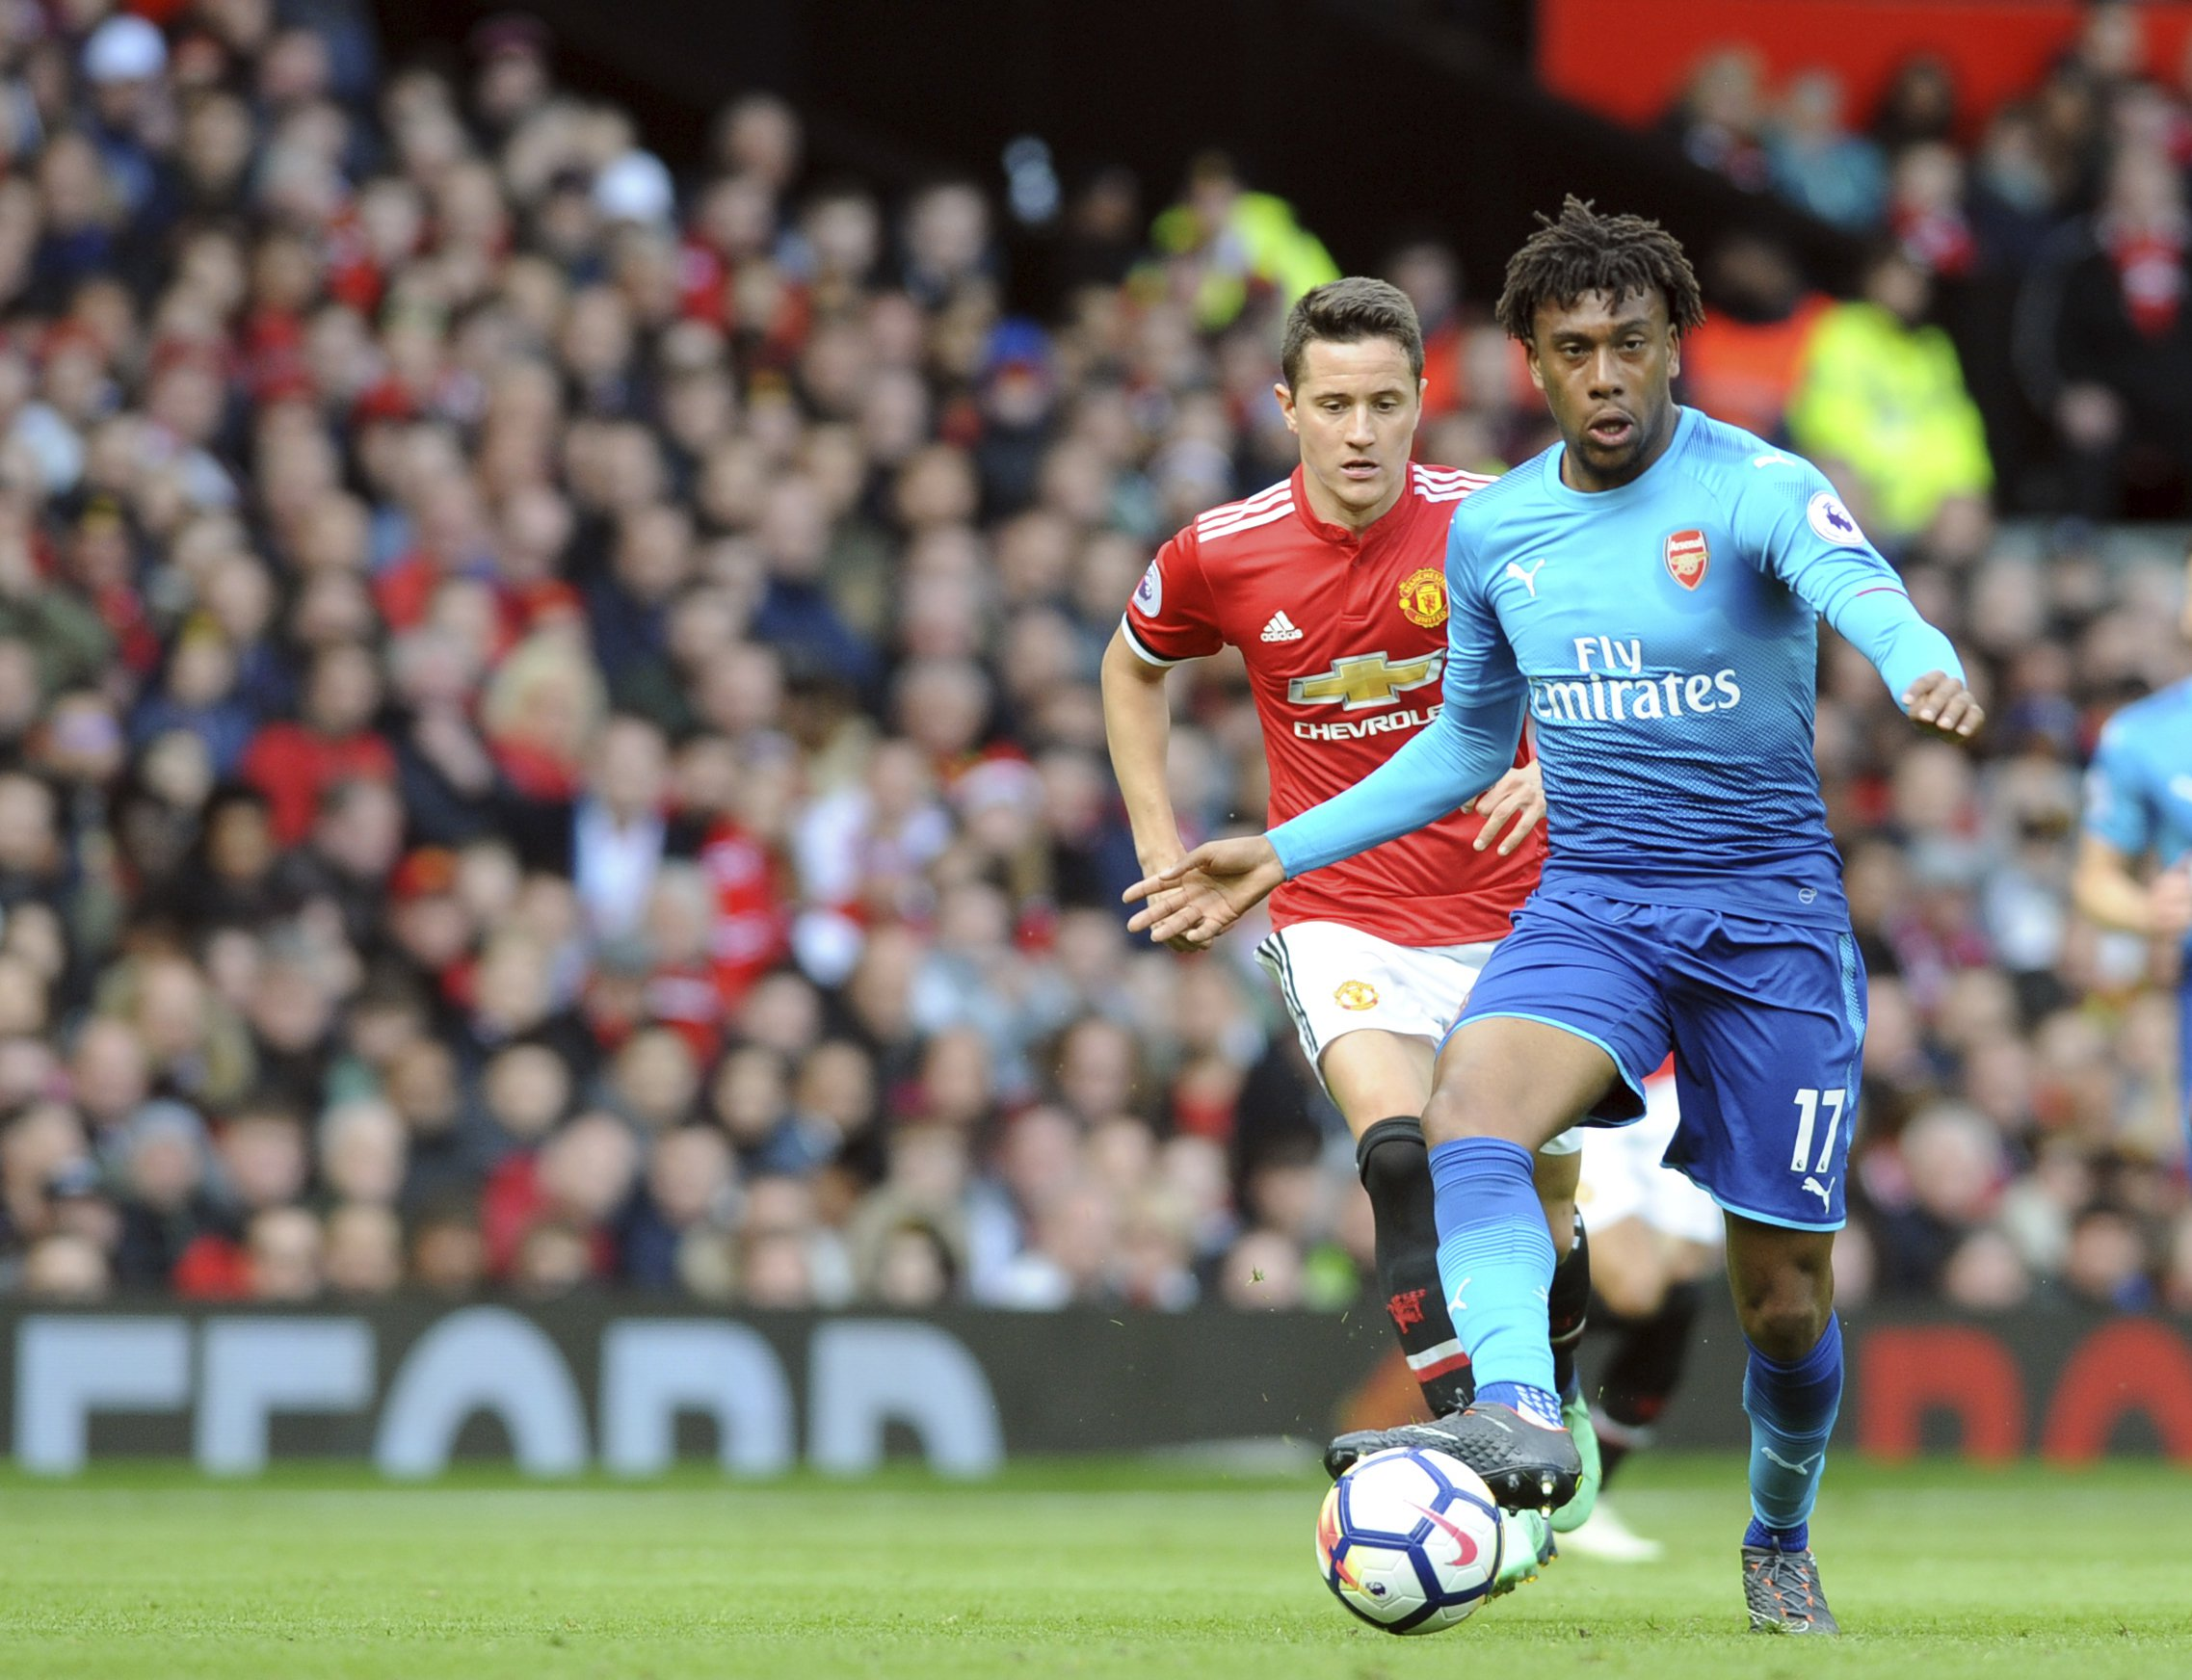 Arsenal's Alex Iwobi, right, and Manchester United's Ander Herrera run for the ball during the English Premier League soccer match between Manchester United and Arsenal at the Old Trafford stadium in Manchester, England, Sunday, April 29, 2018. (AP Photo/Rui Vieira)